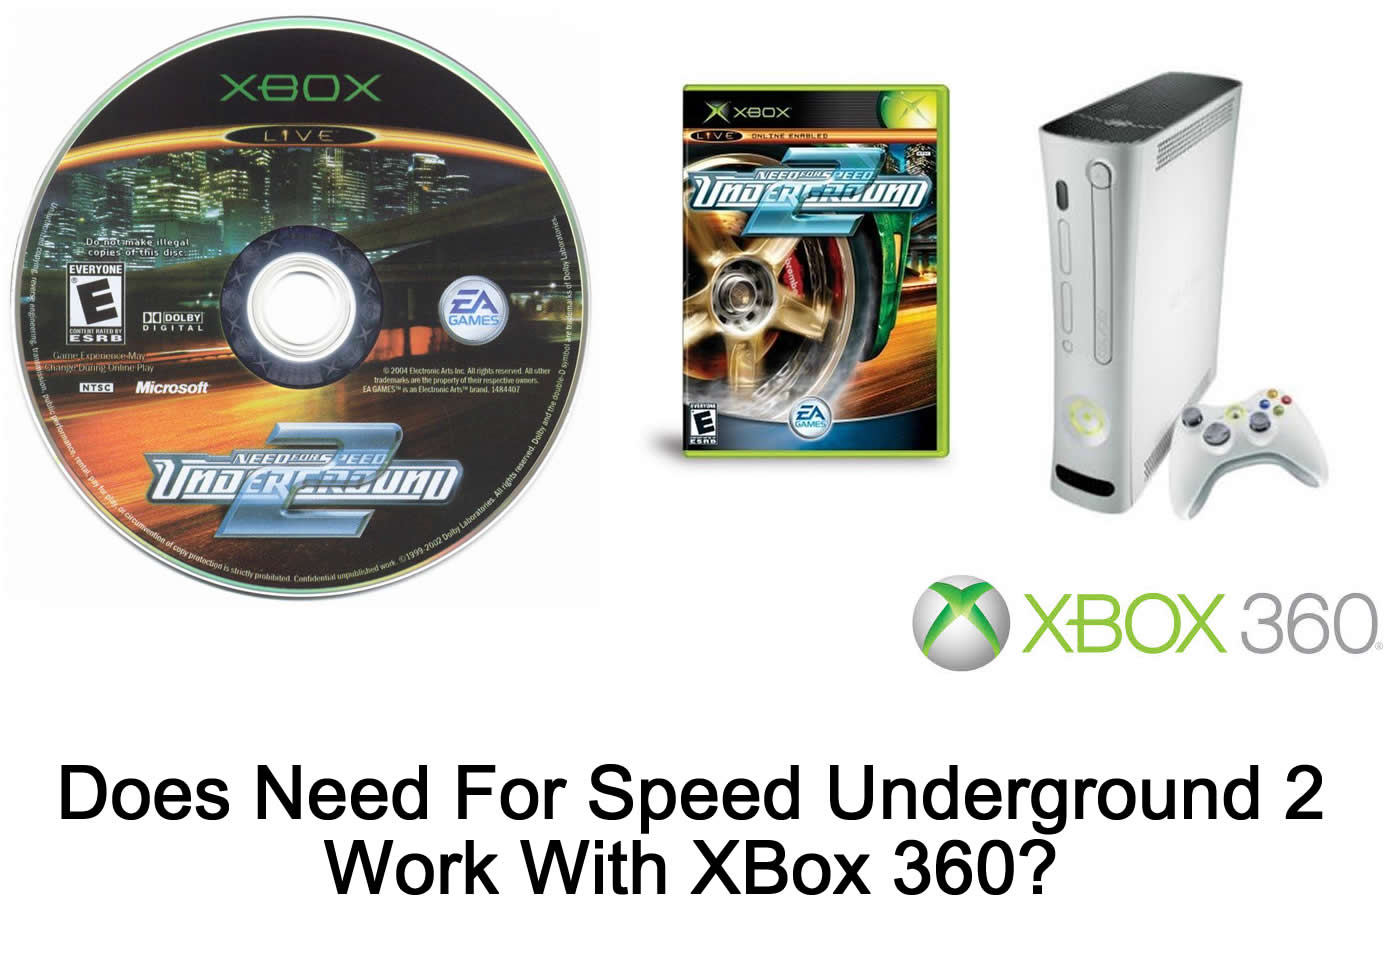 Does Need For Speed Underground 2 Work On Xbox 360? - FITAMA